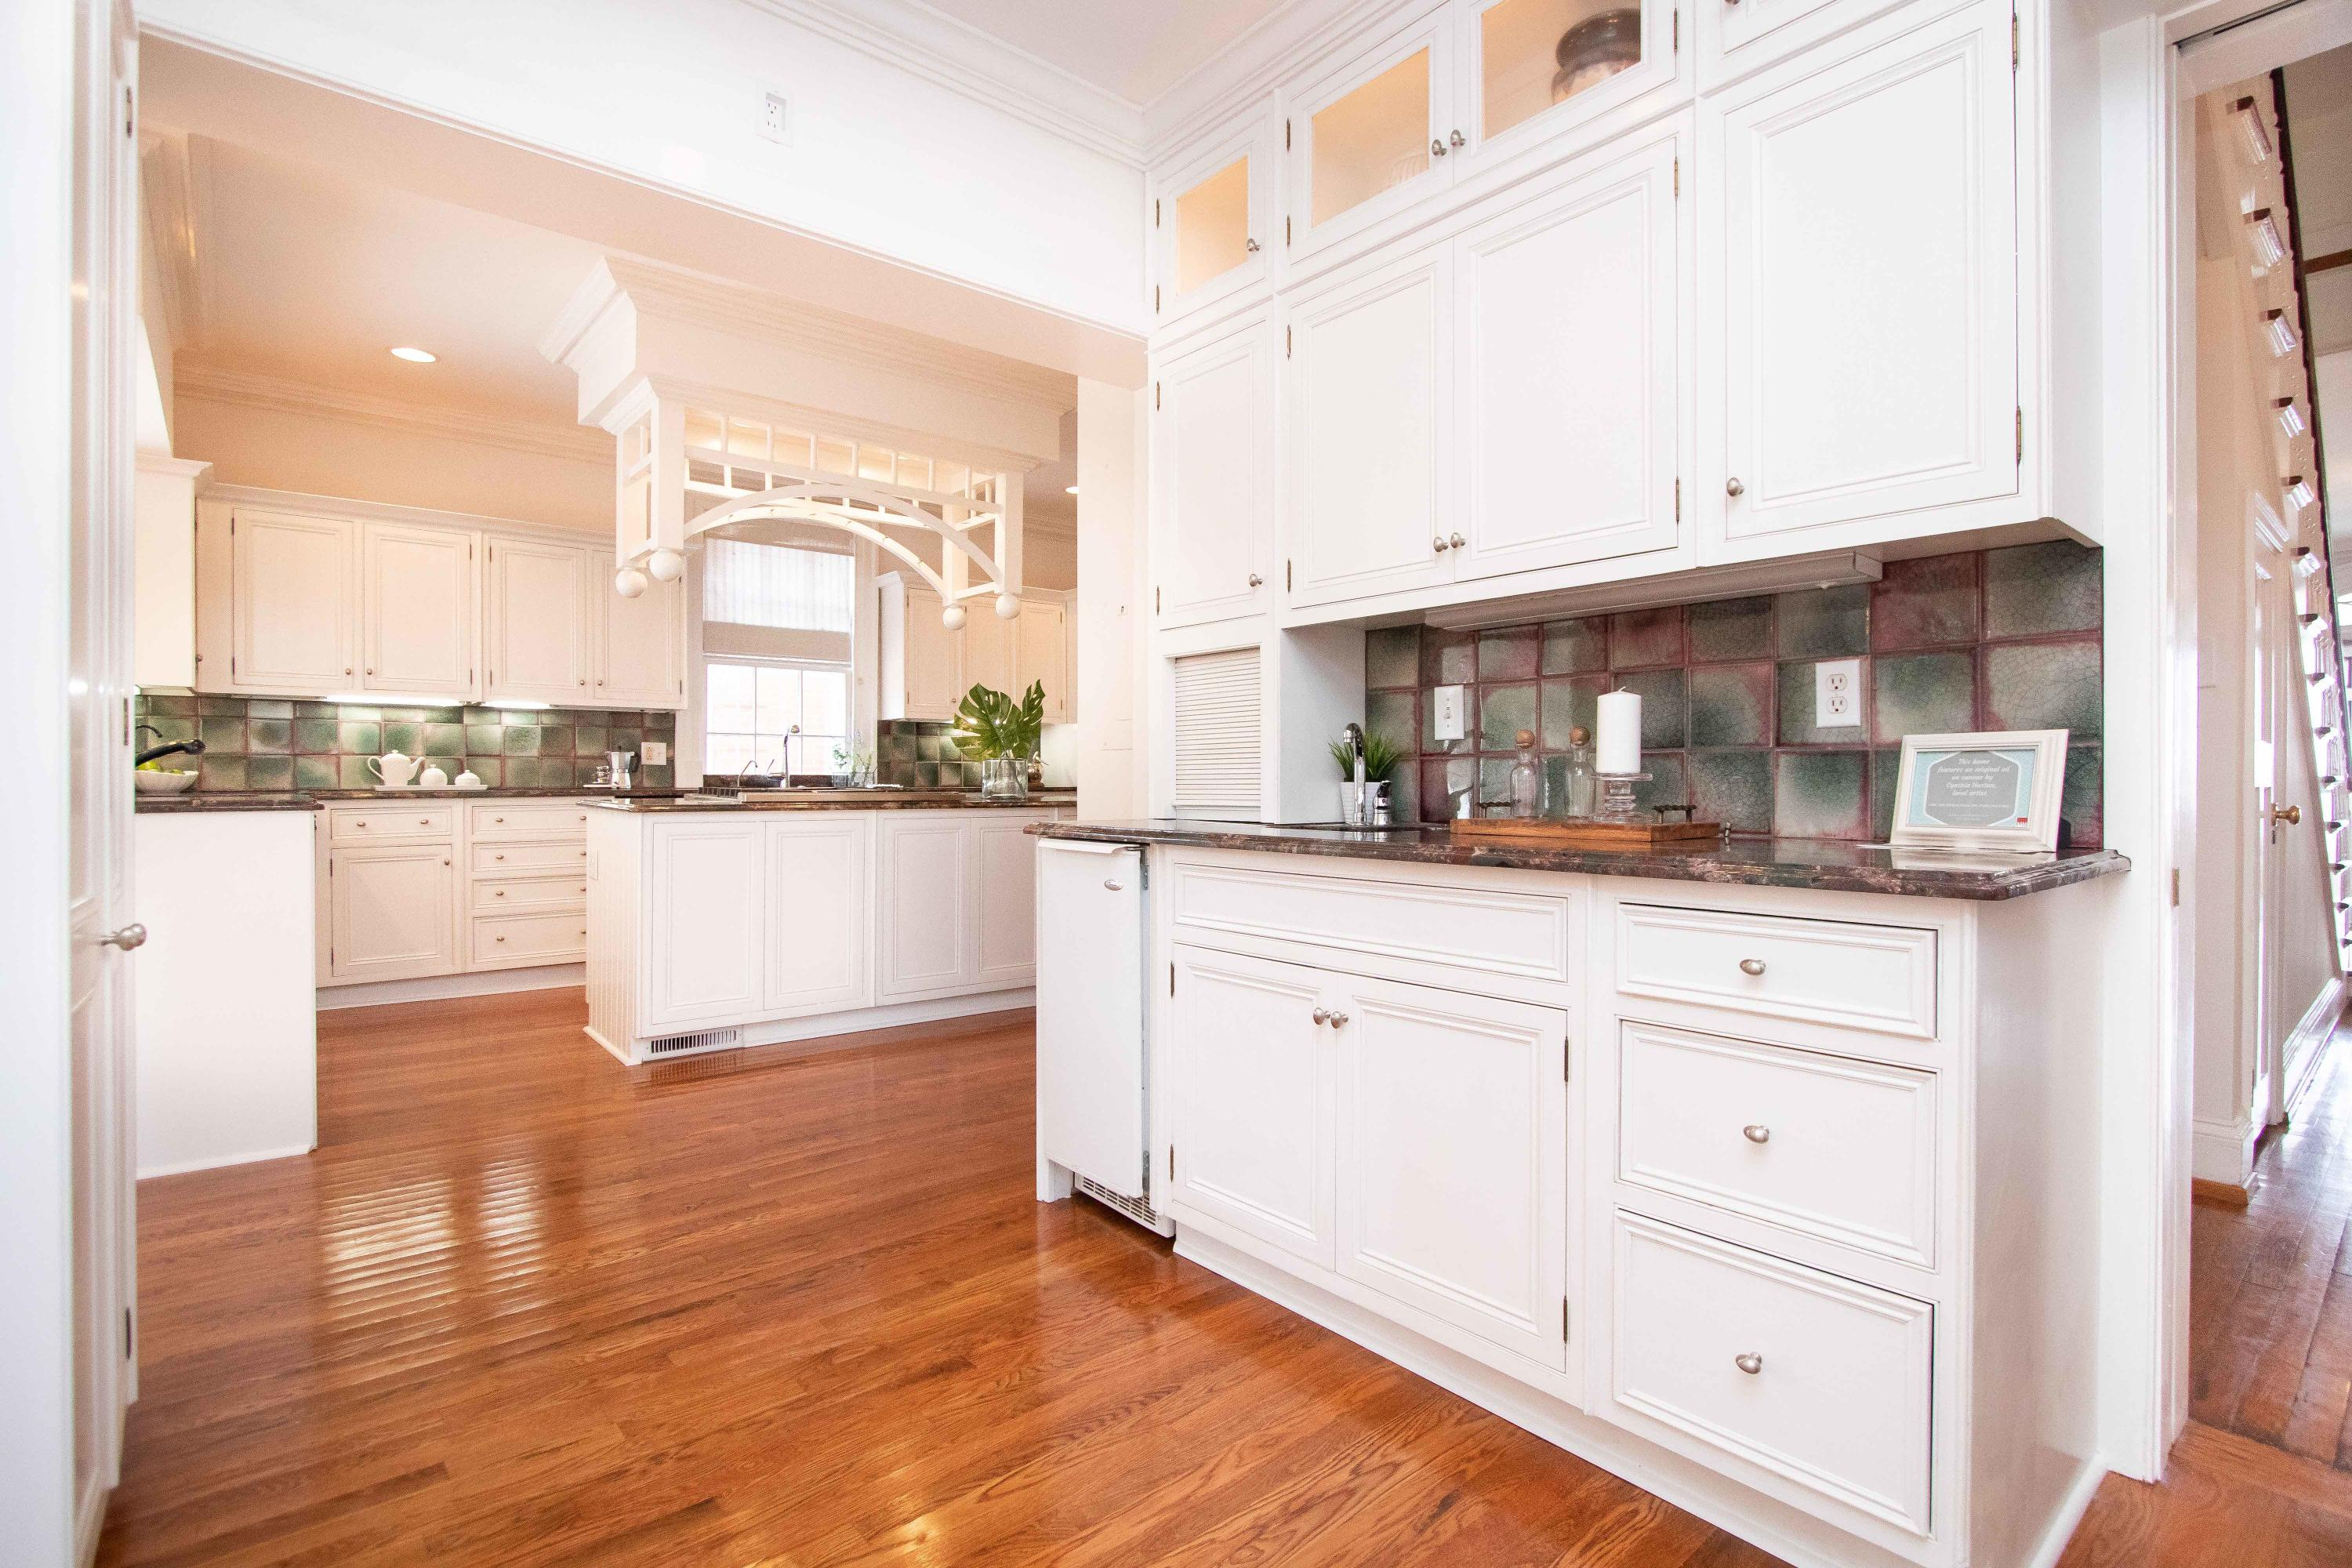 South of Broad Homes For Sale - 104 Murray, Charleston, SC - 38